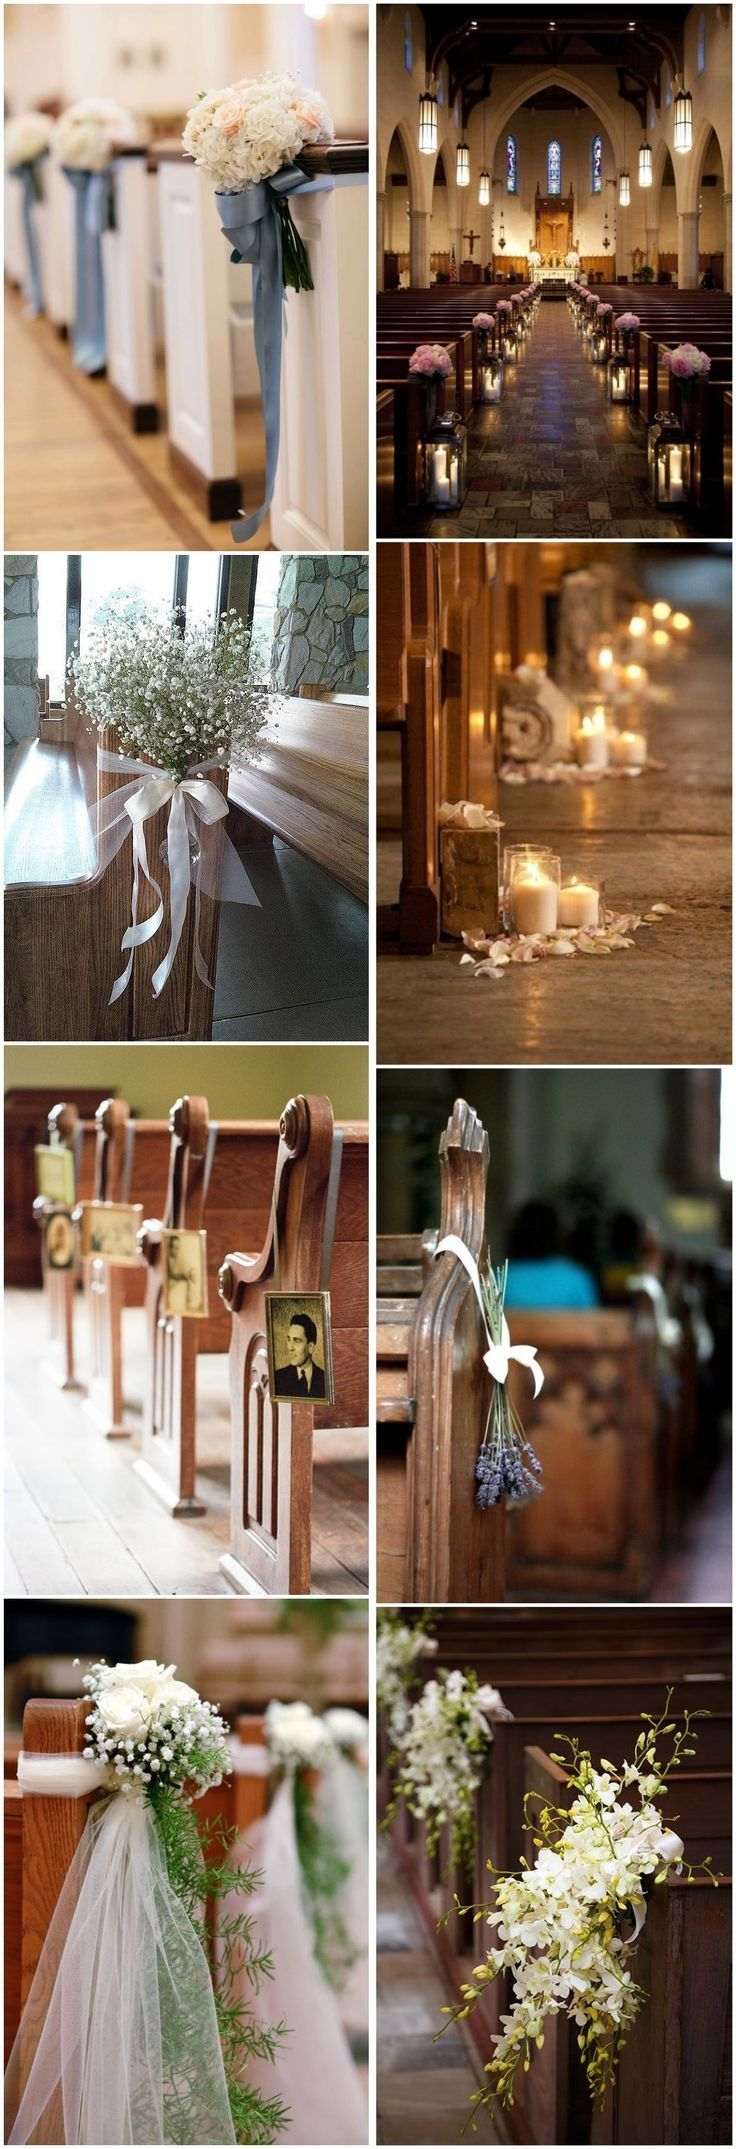 Wedding Decorations » 21 Stunning Church Wedding Aisle Decoration Ideas to Steal » ❤️ See more: